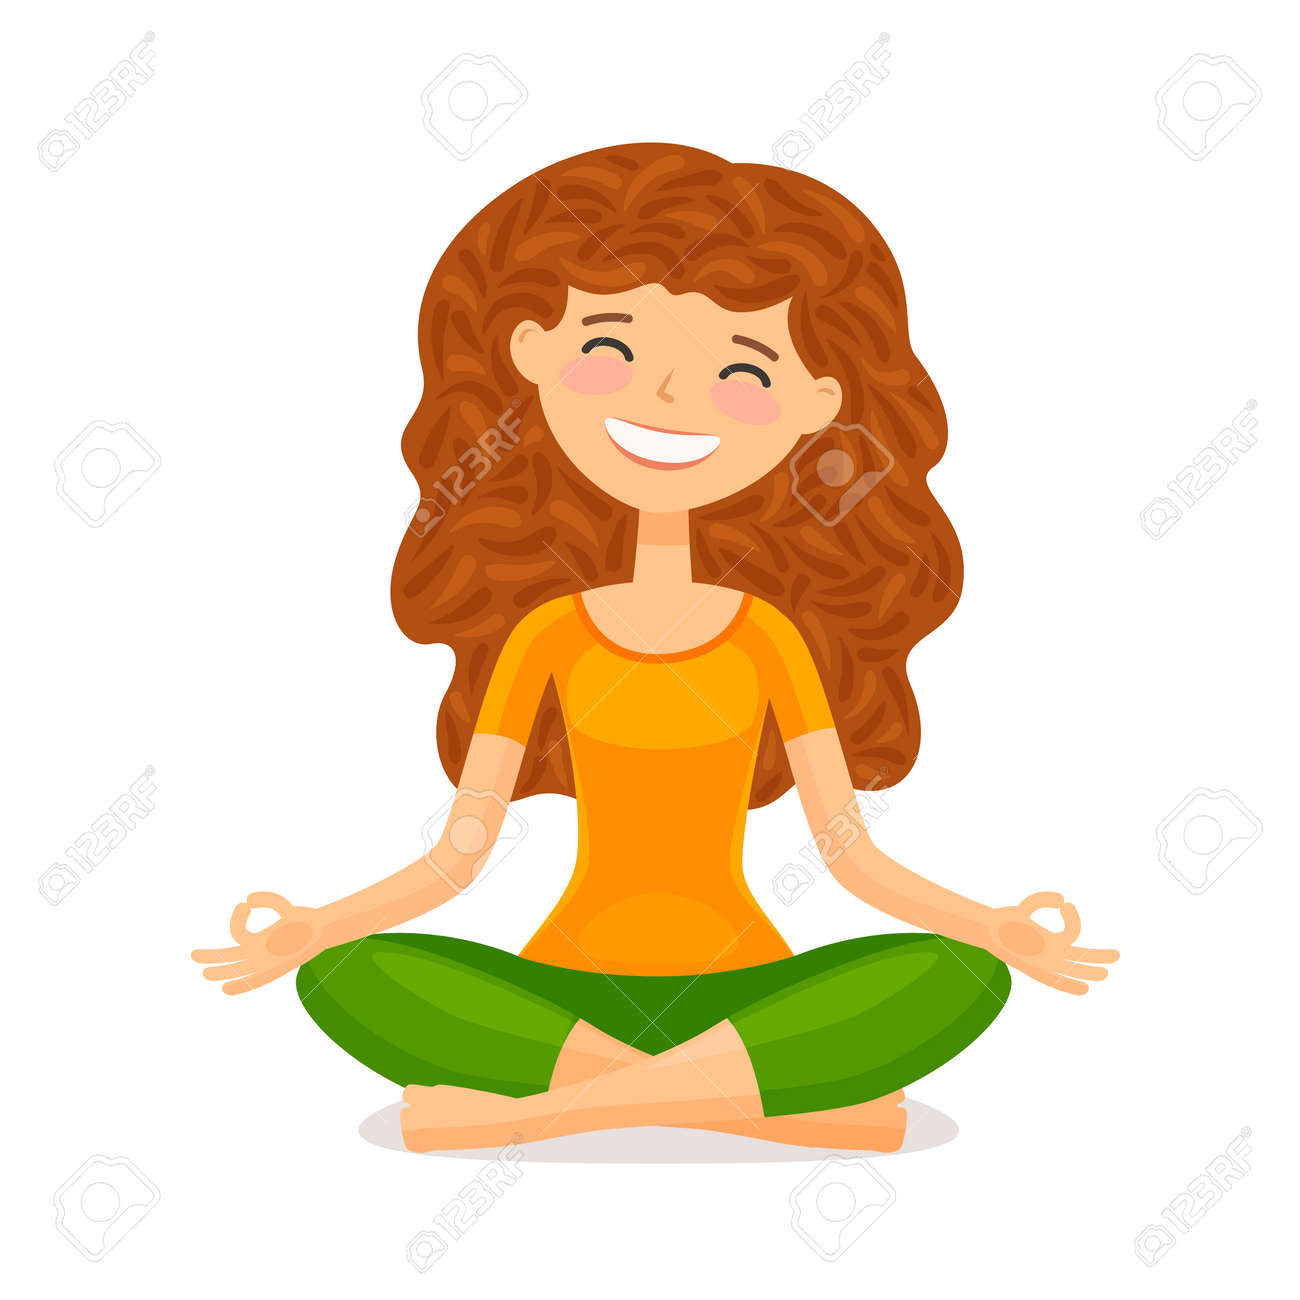 Cute Girl Doing Yoga Relaxation Meditation Concept Funny Cartoon Royalty Free Cliparts Vectors And Stock Illustration Image 101253105